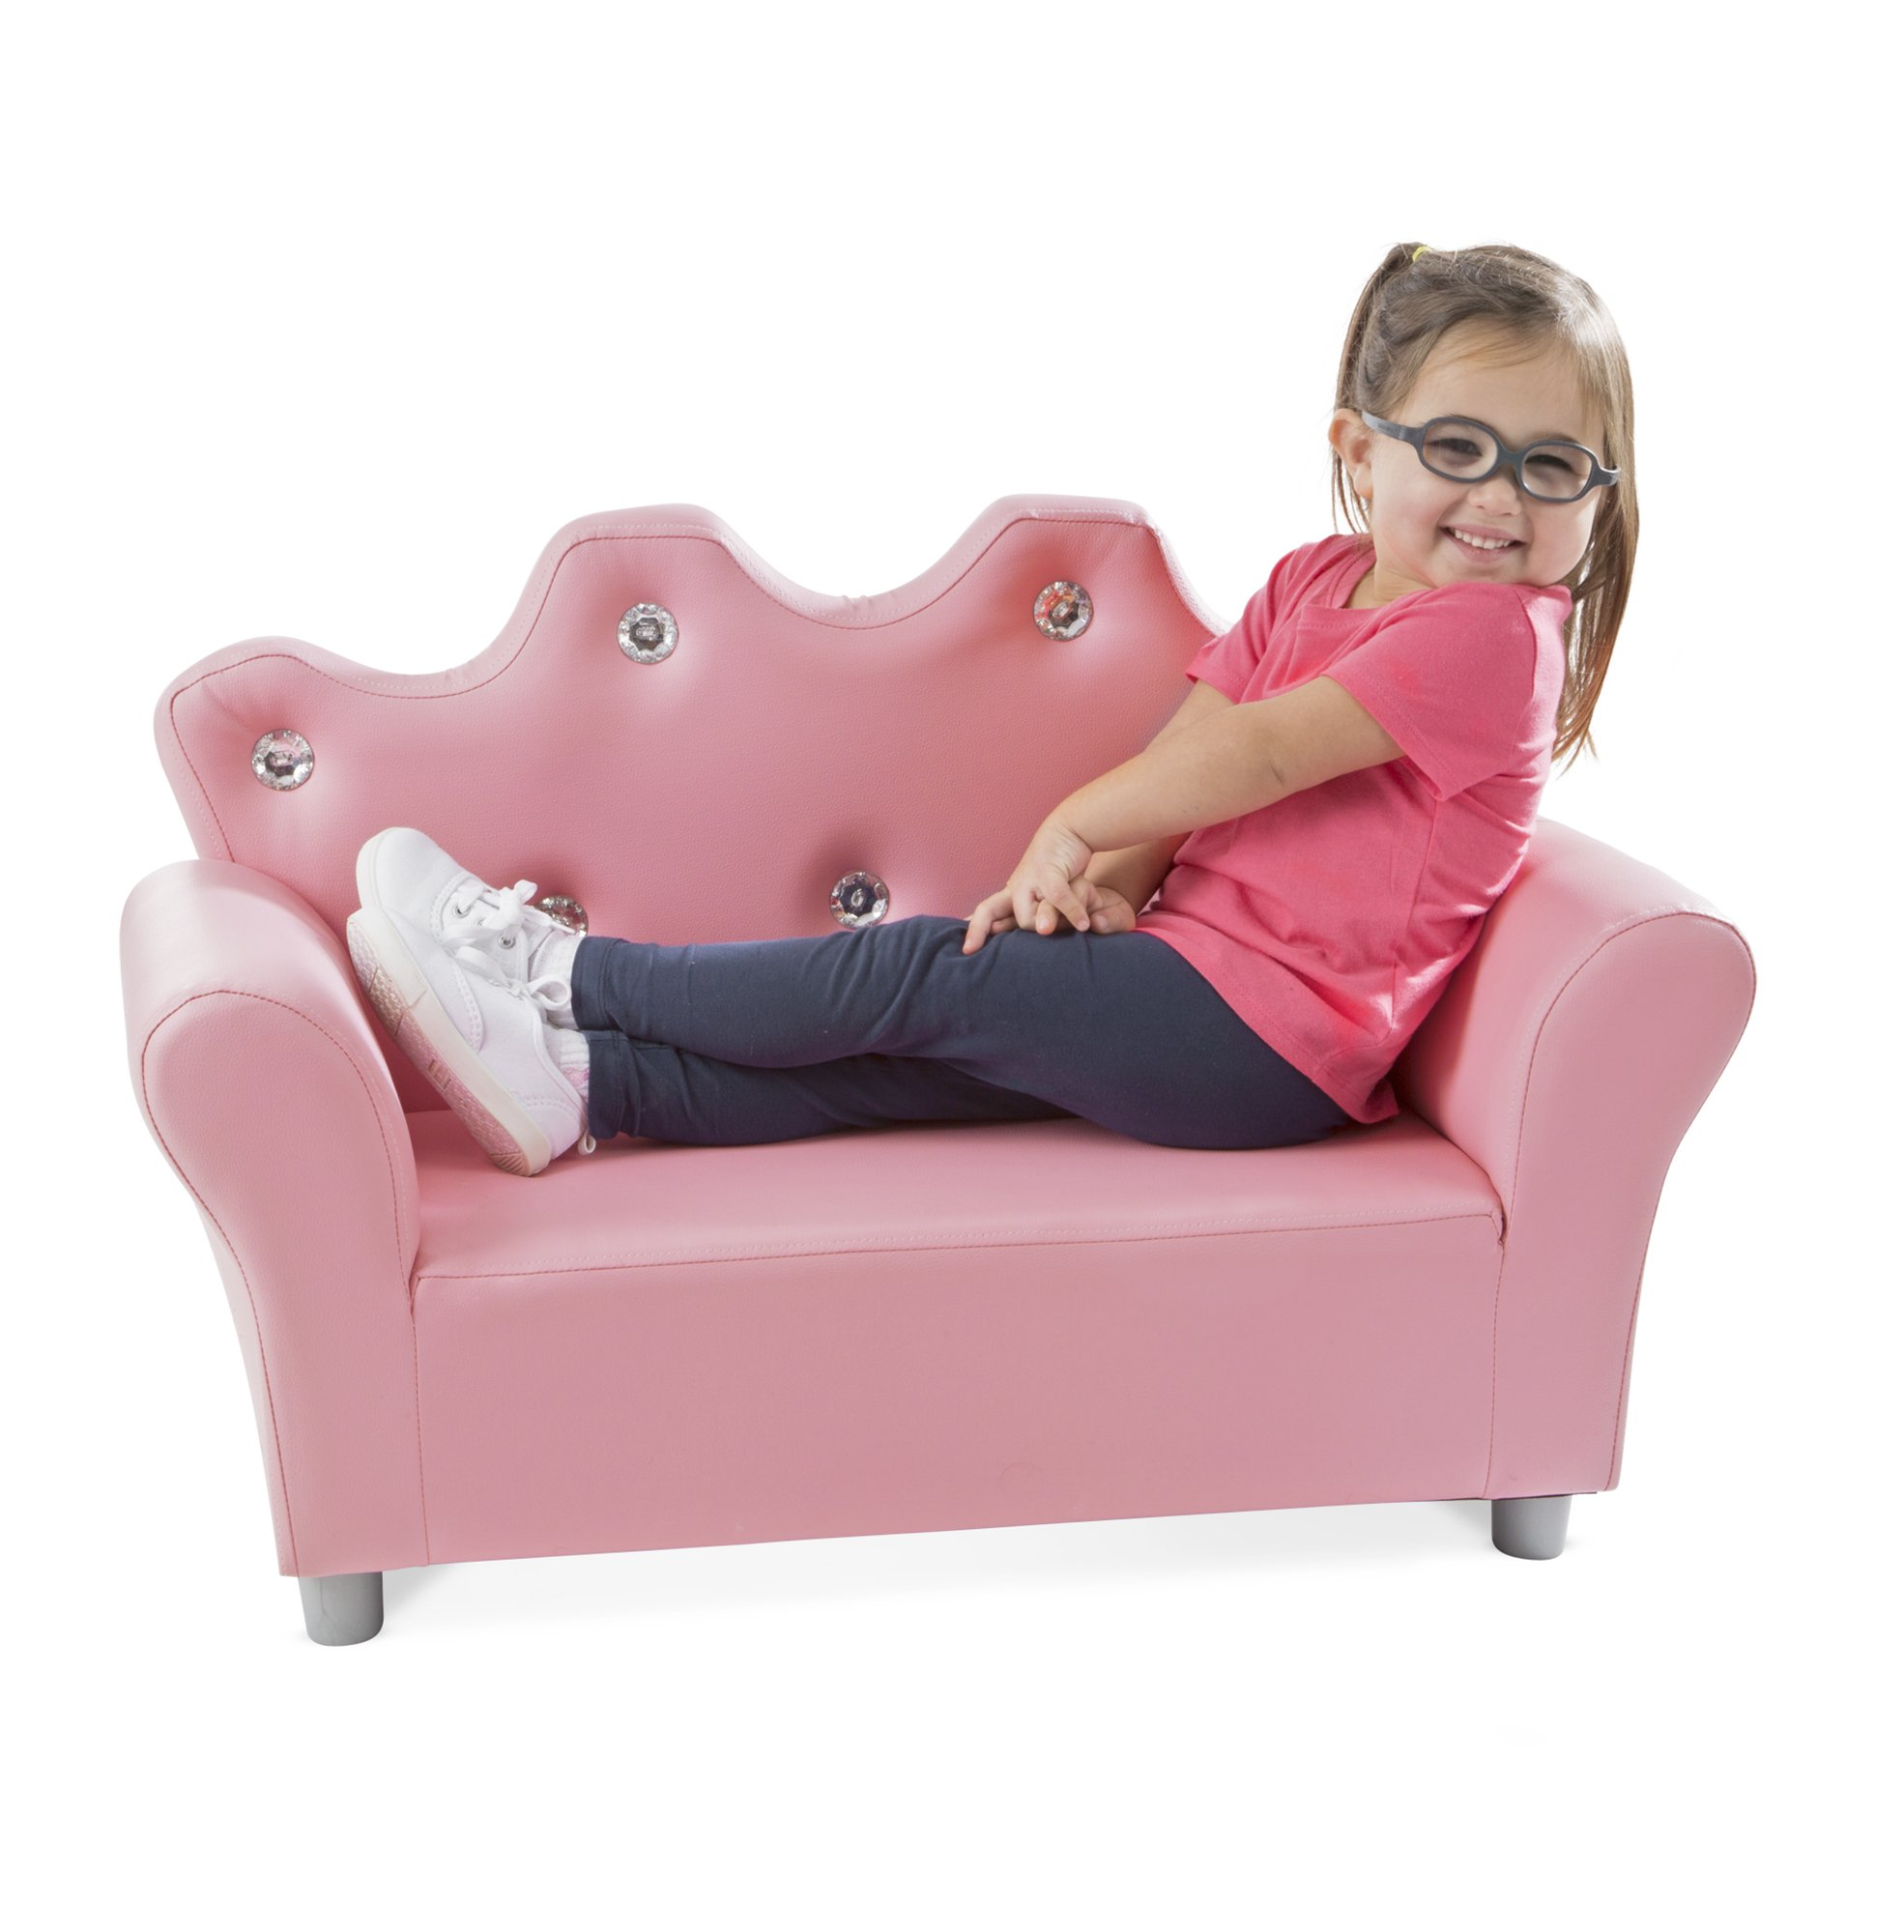 Melissa & Doug Child's Crown Sofa - Pink Faux Leather Children's Furniture